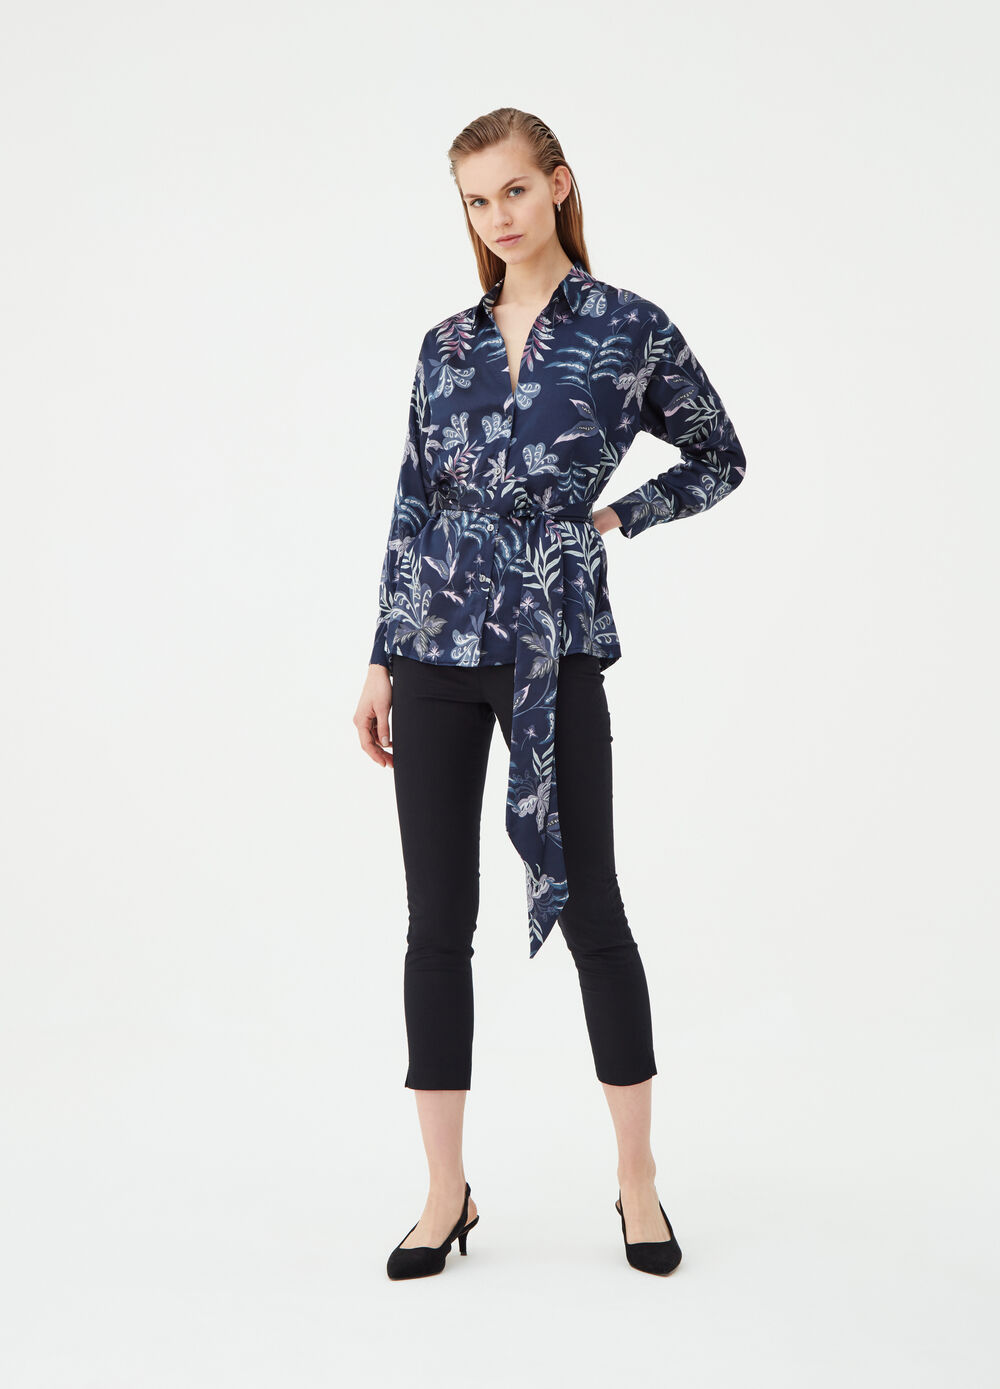 Satin blouse with floral print and belt